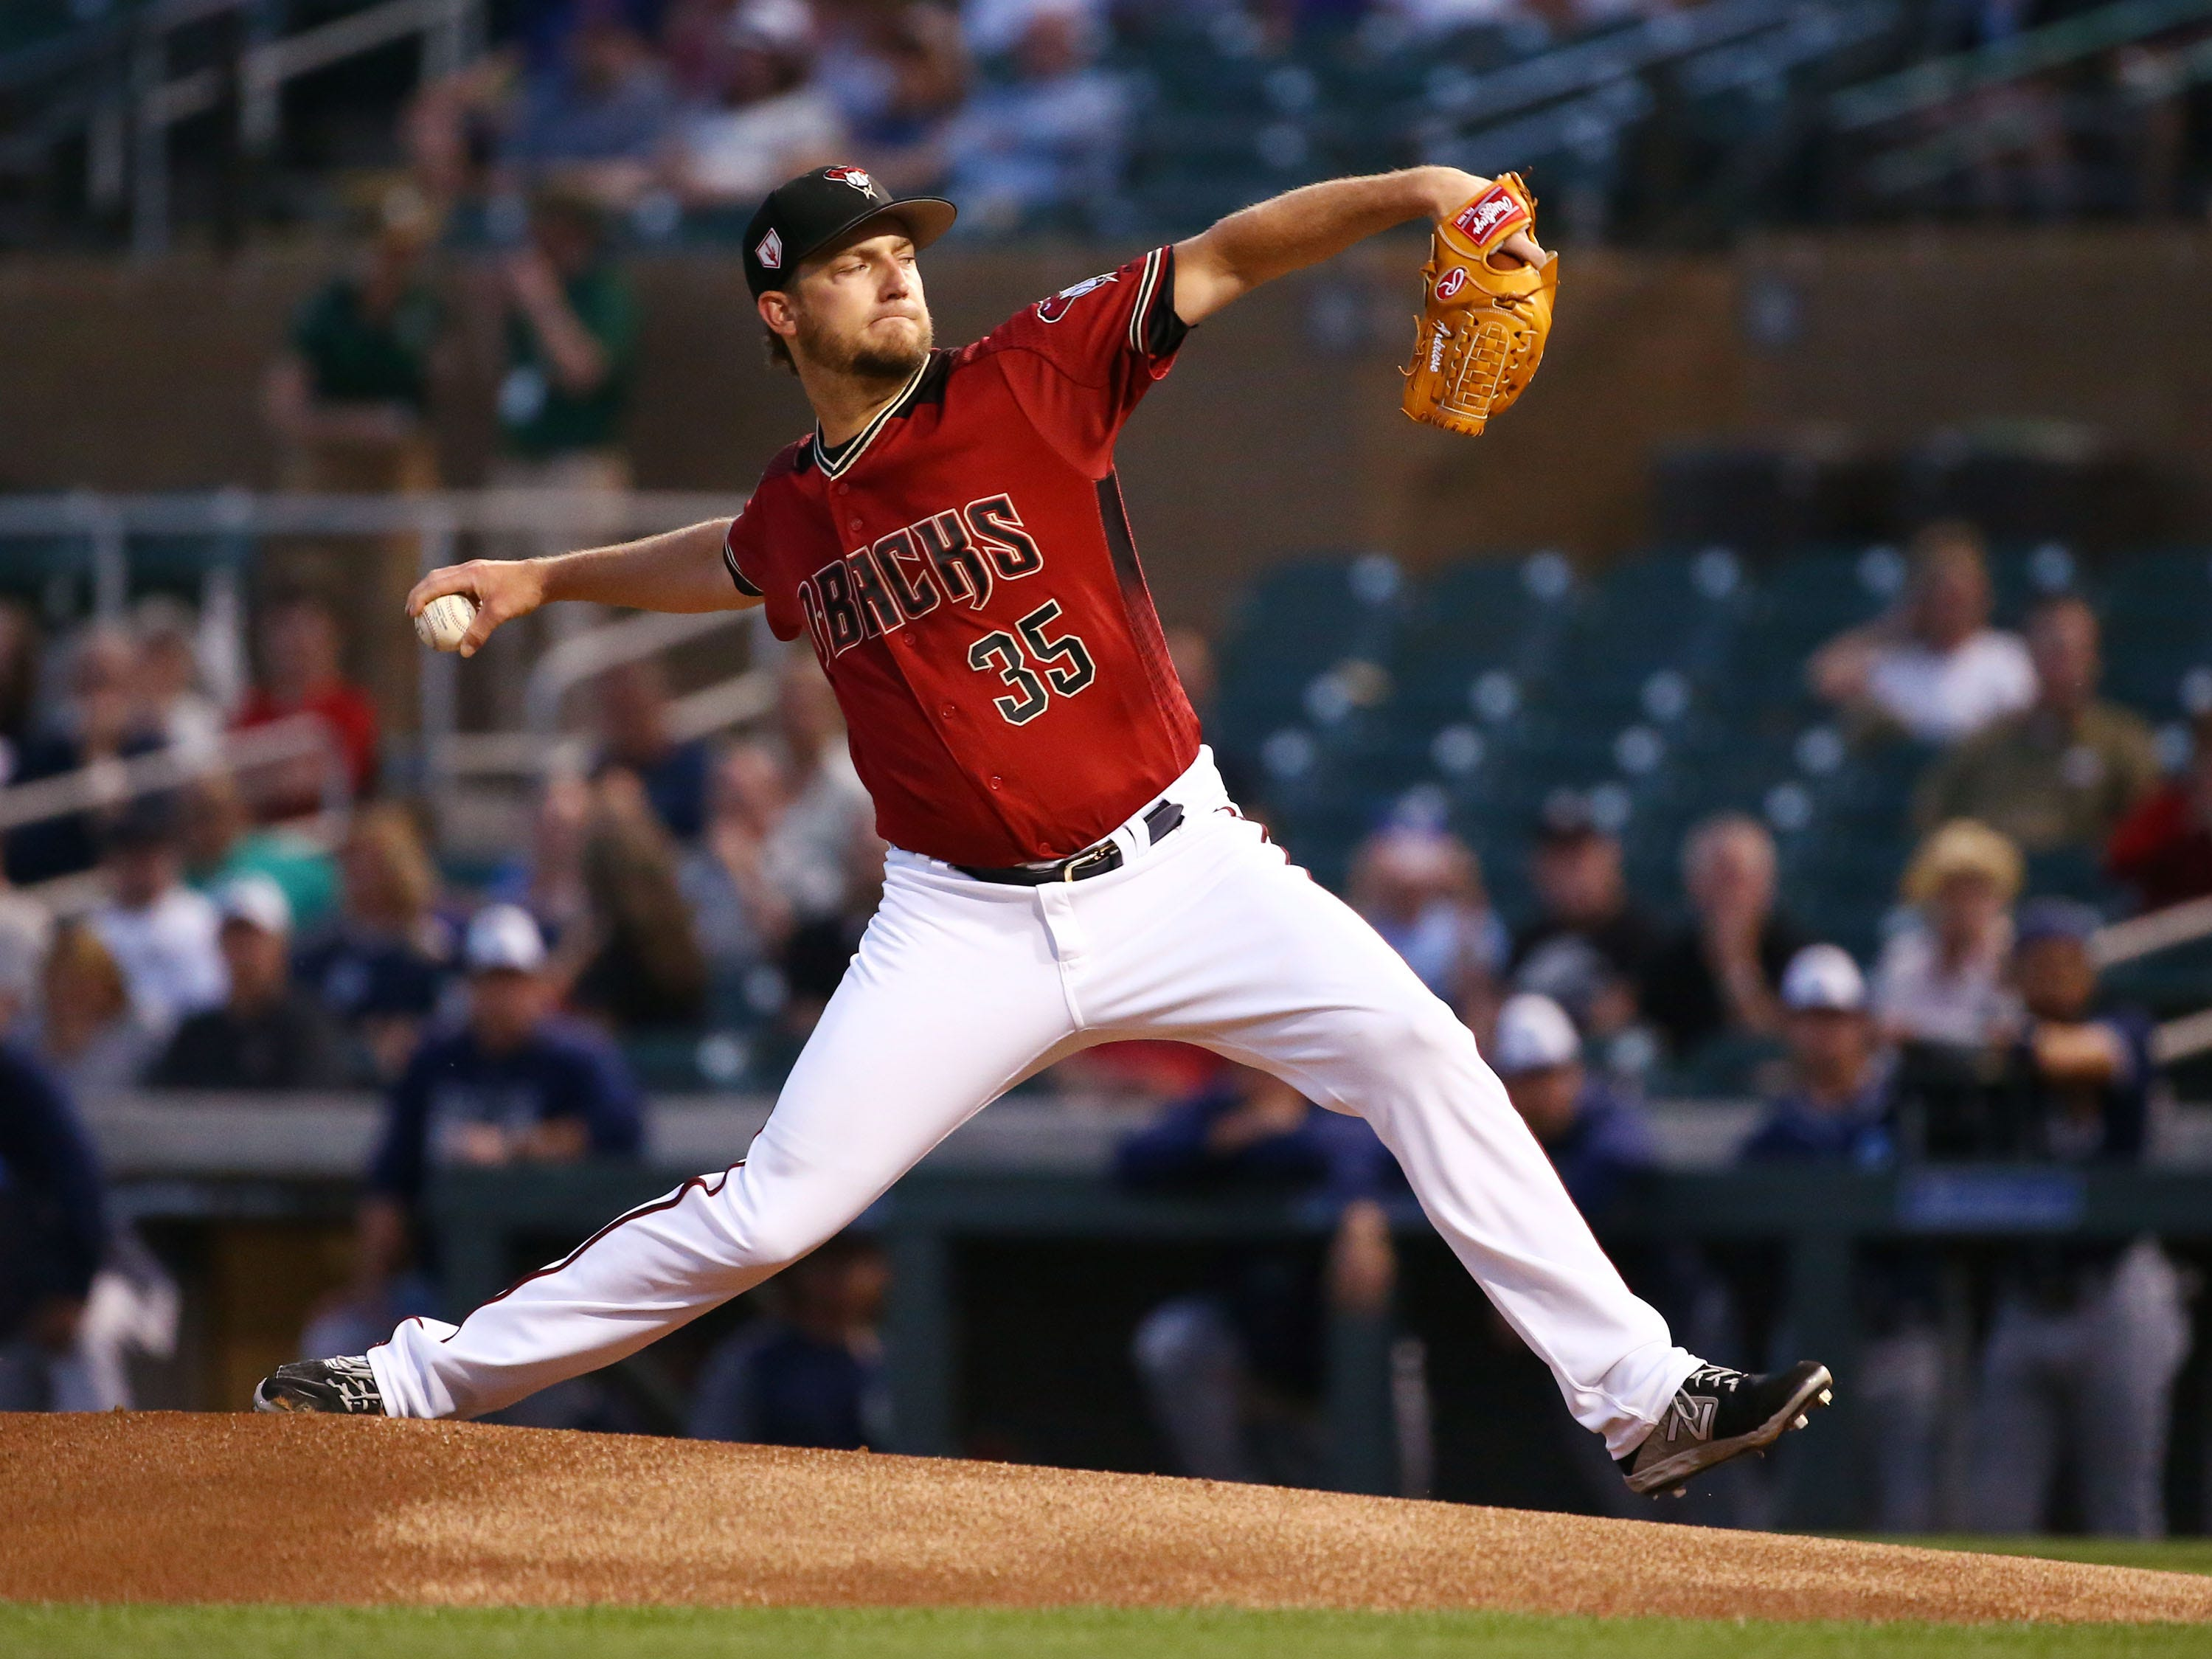 Arizona Diamondbacks Matt Andriese against the San Diego Padres in the 1st inning during a spring training game on Mar. 19, 2019 at Salt River Fields in Scottsdale, Ariz.